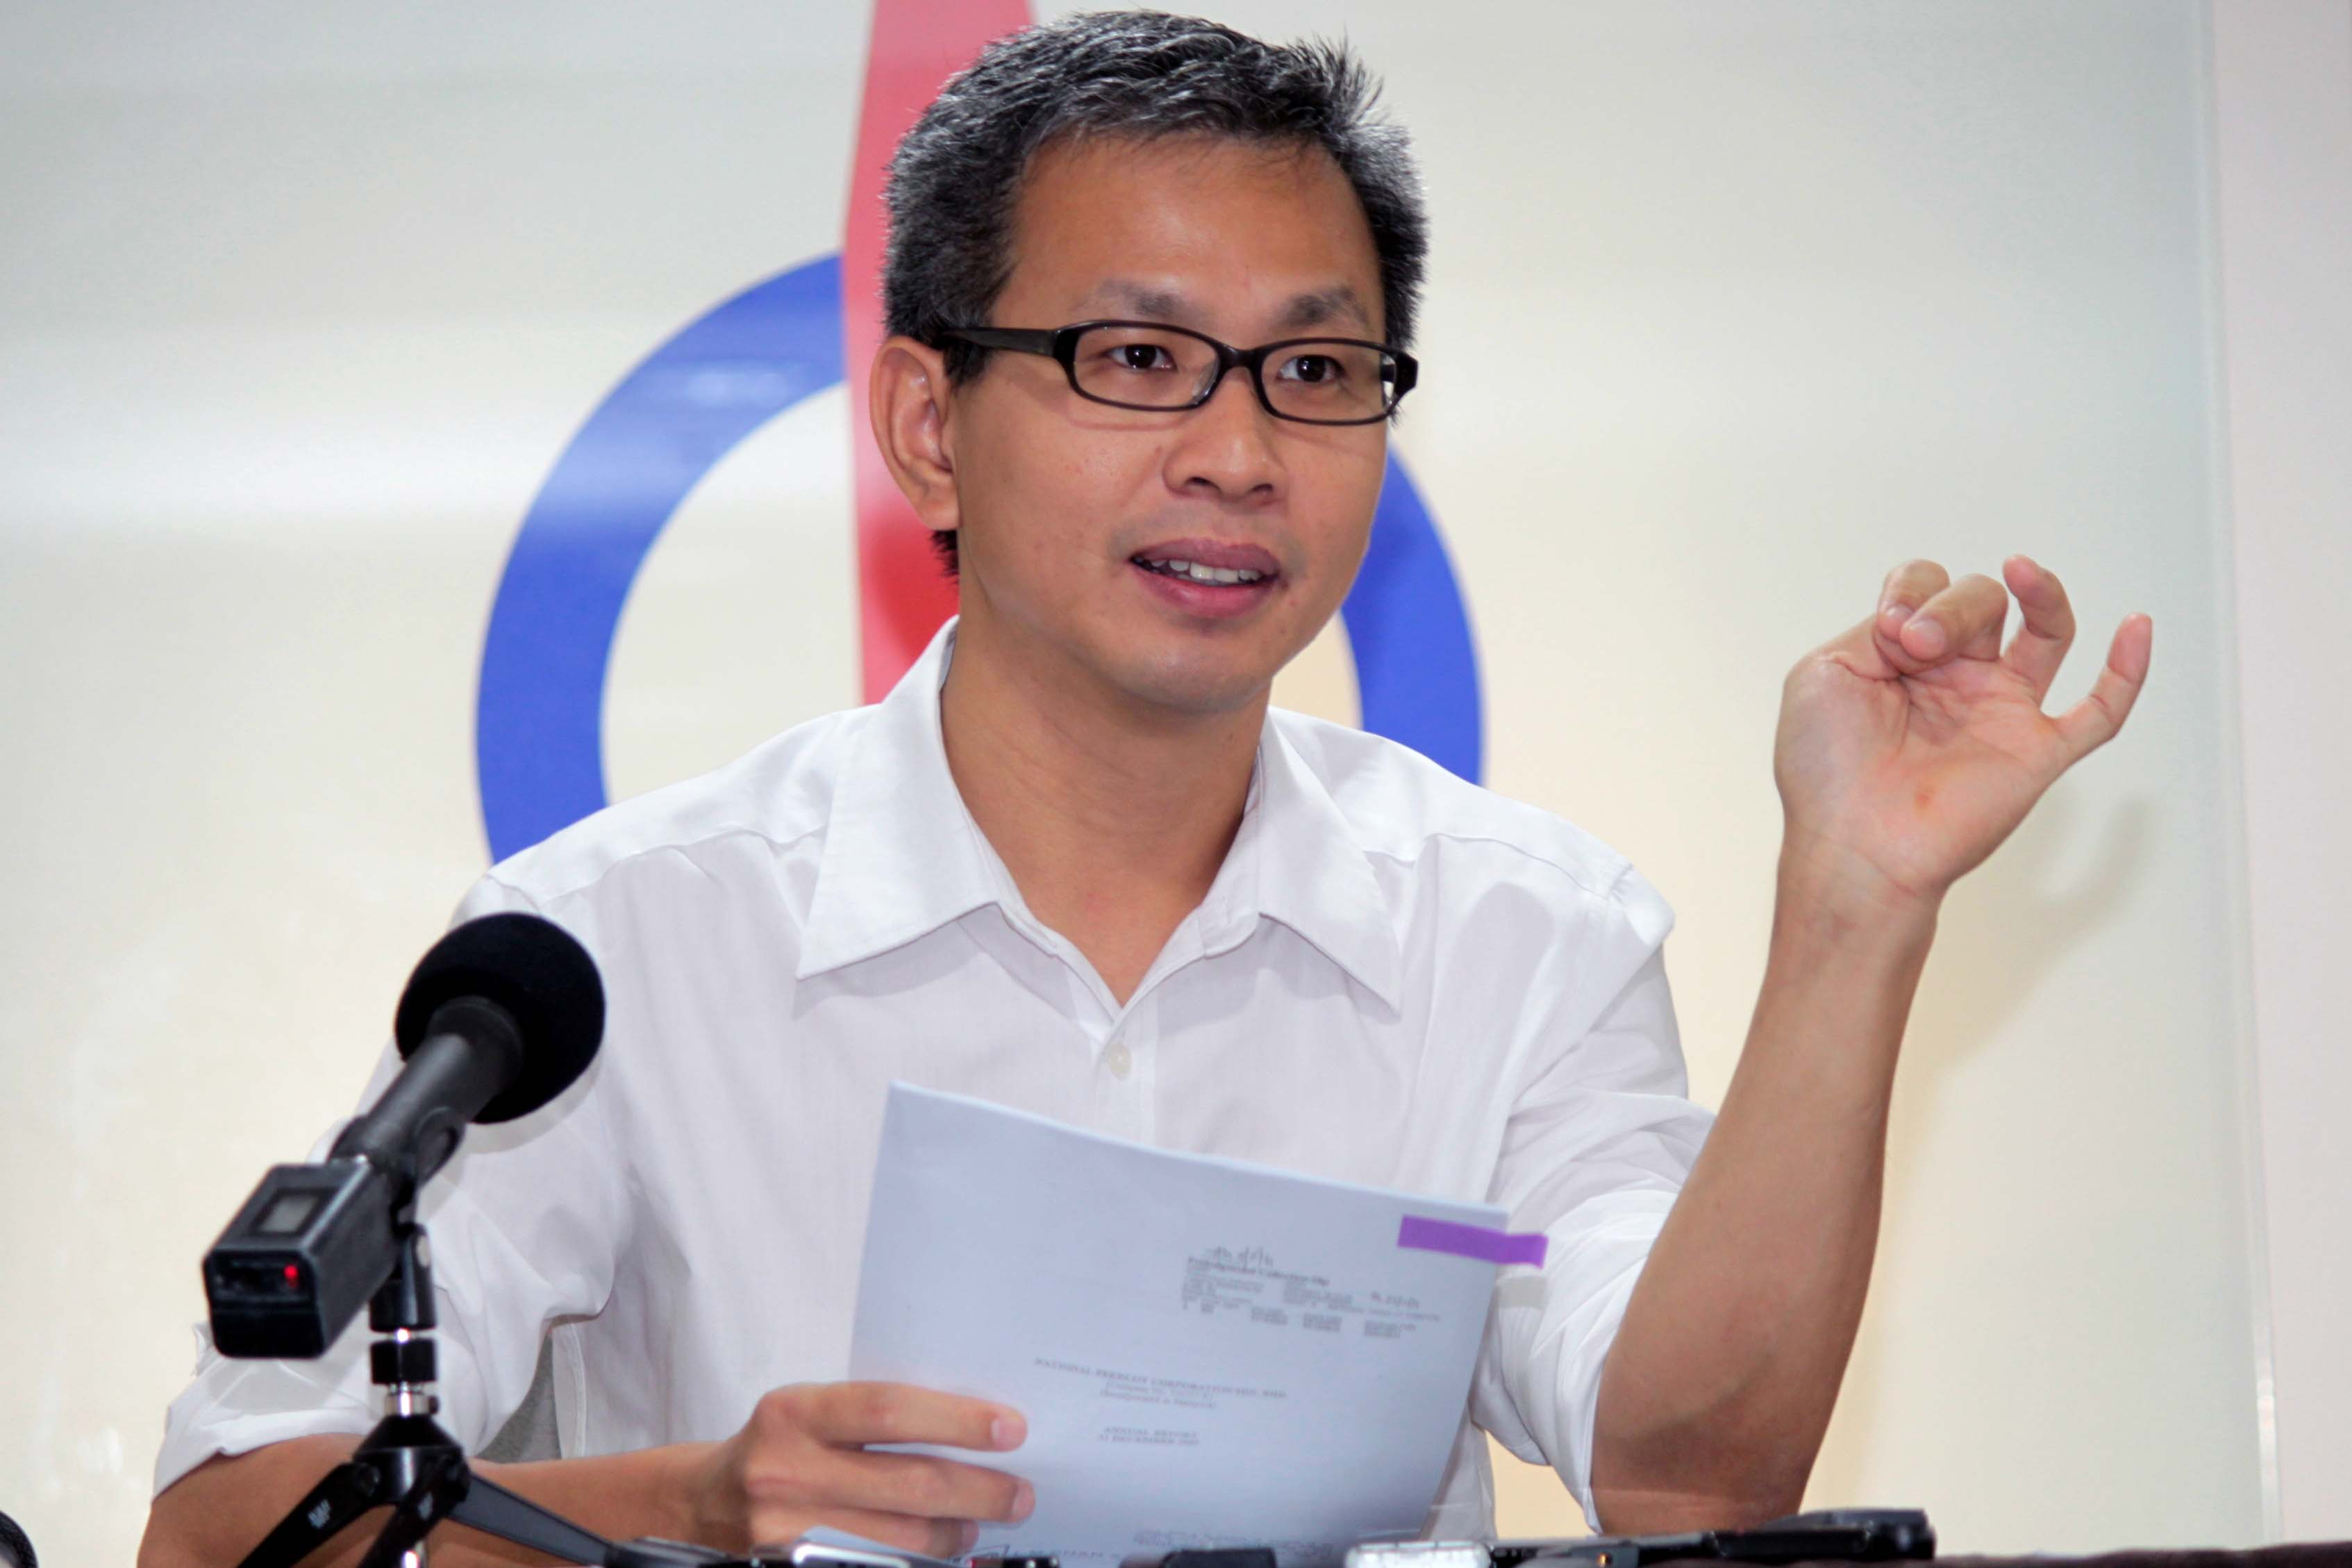 PAC member and DAP National Publicity Secretary Tony Pua said Hazem's 'resignation' shows all is not well within the 1MDB